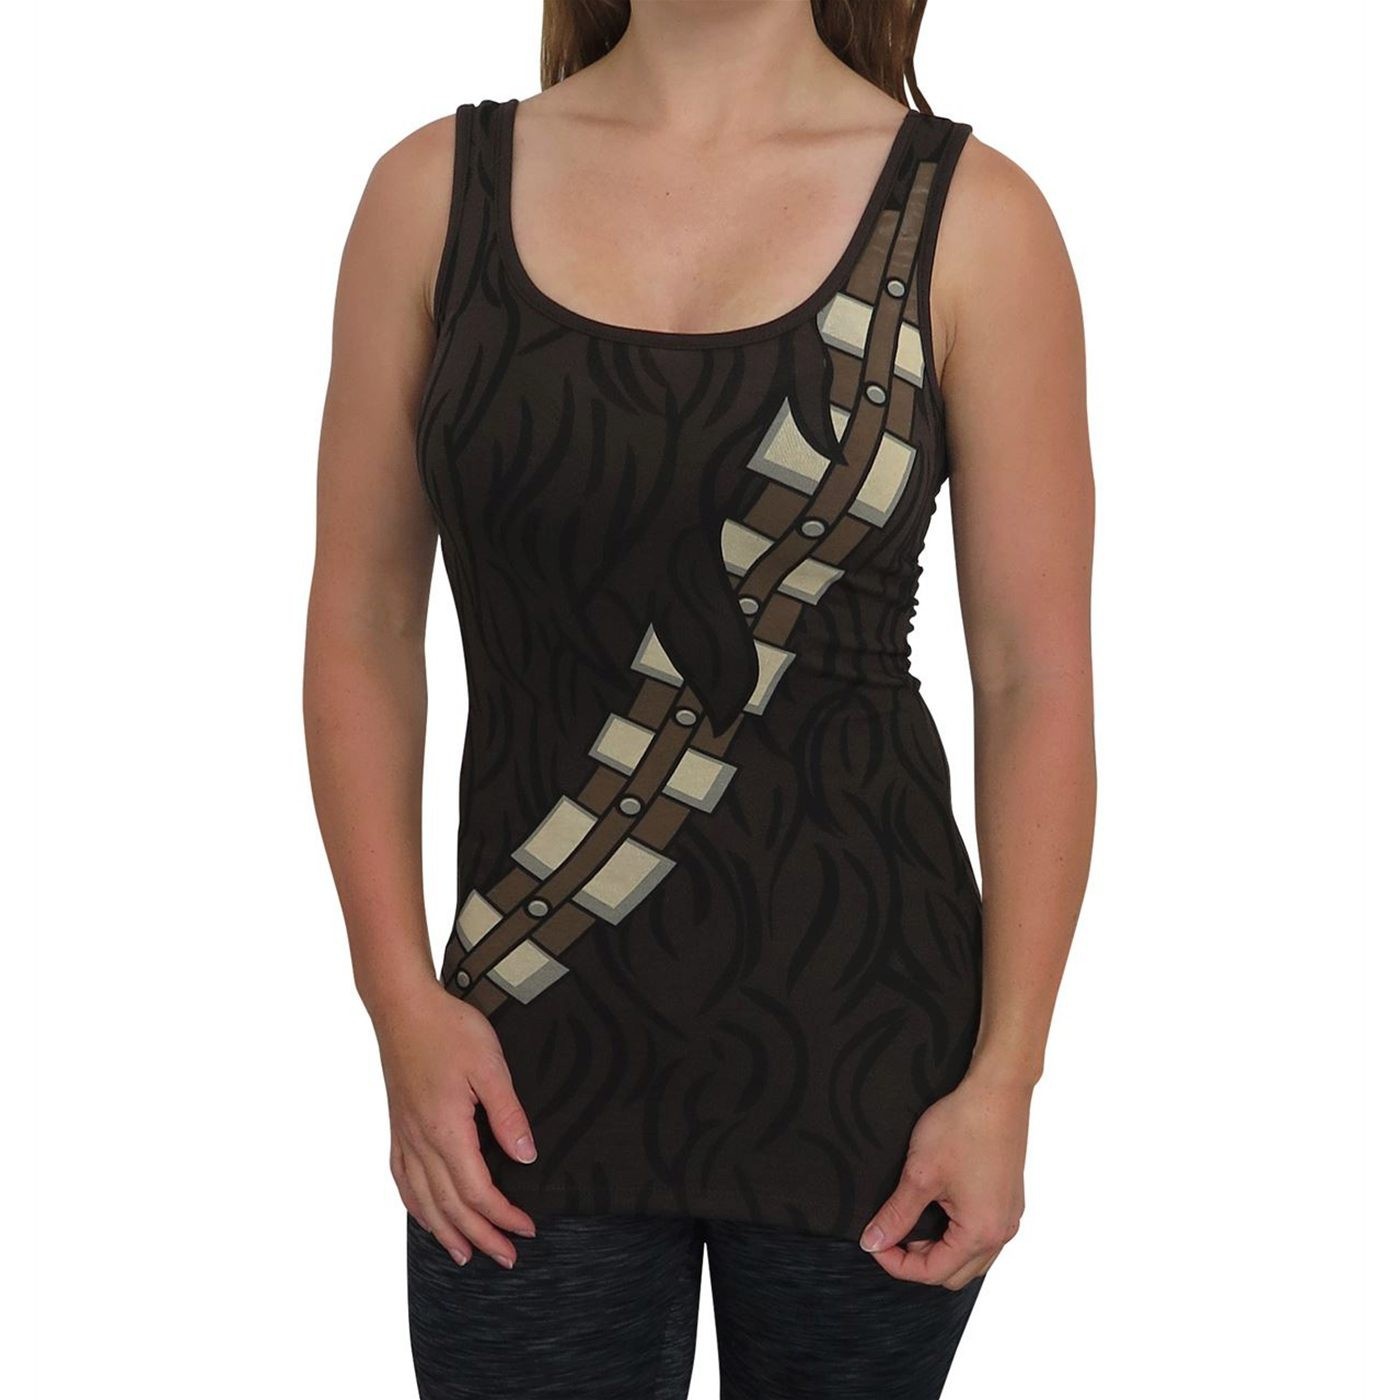 Star Wars Women's Chewbacca Costume Tank Top